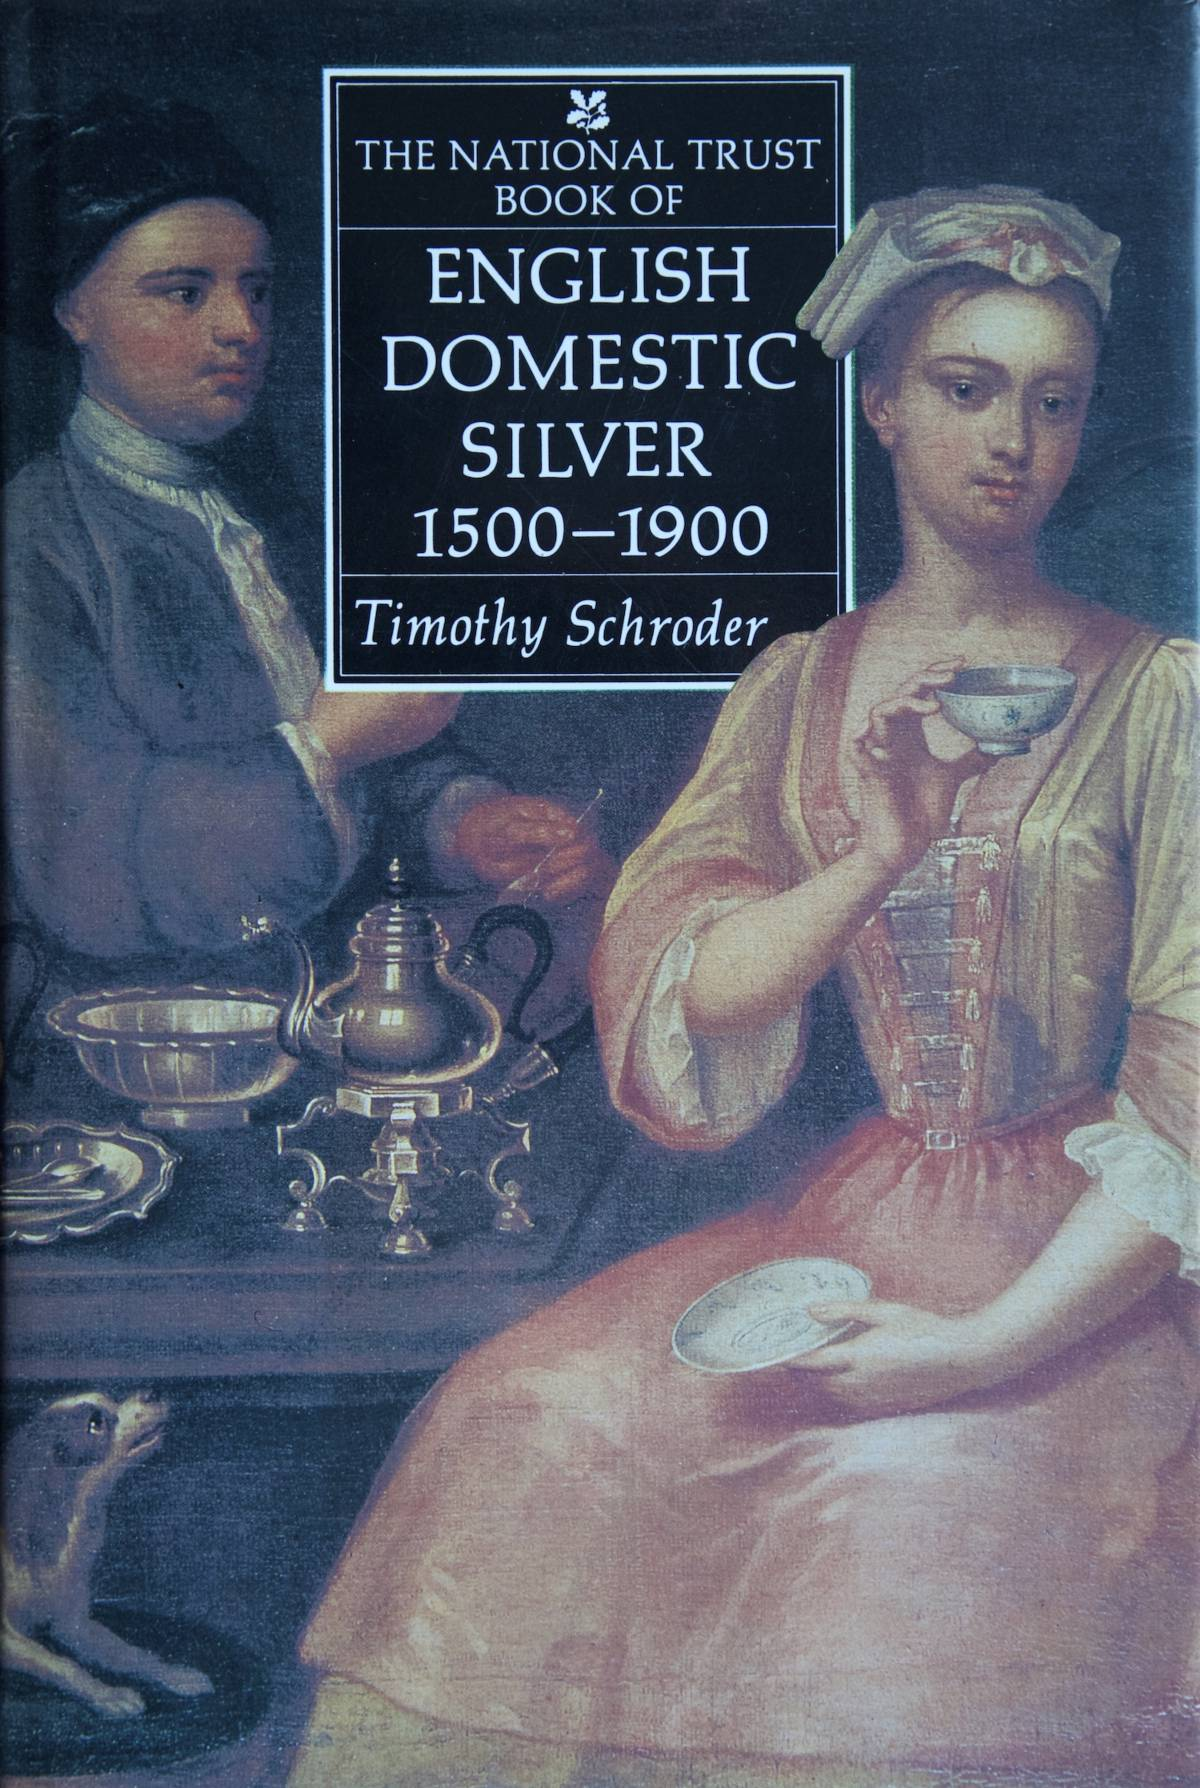 English Domestic Silver v. Schroder ISBN-13: 978-0670802371